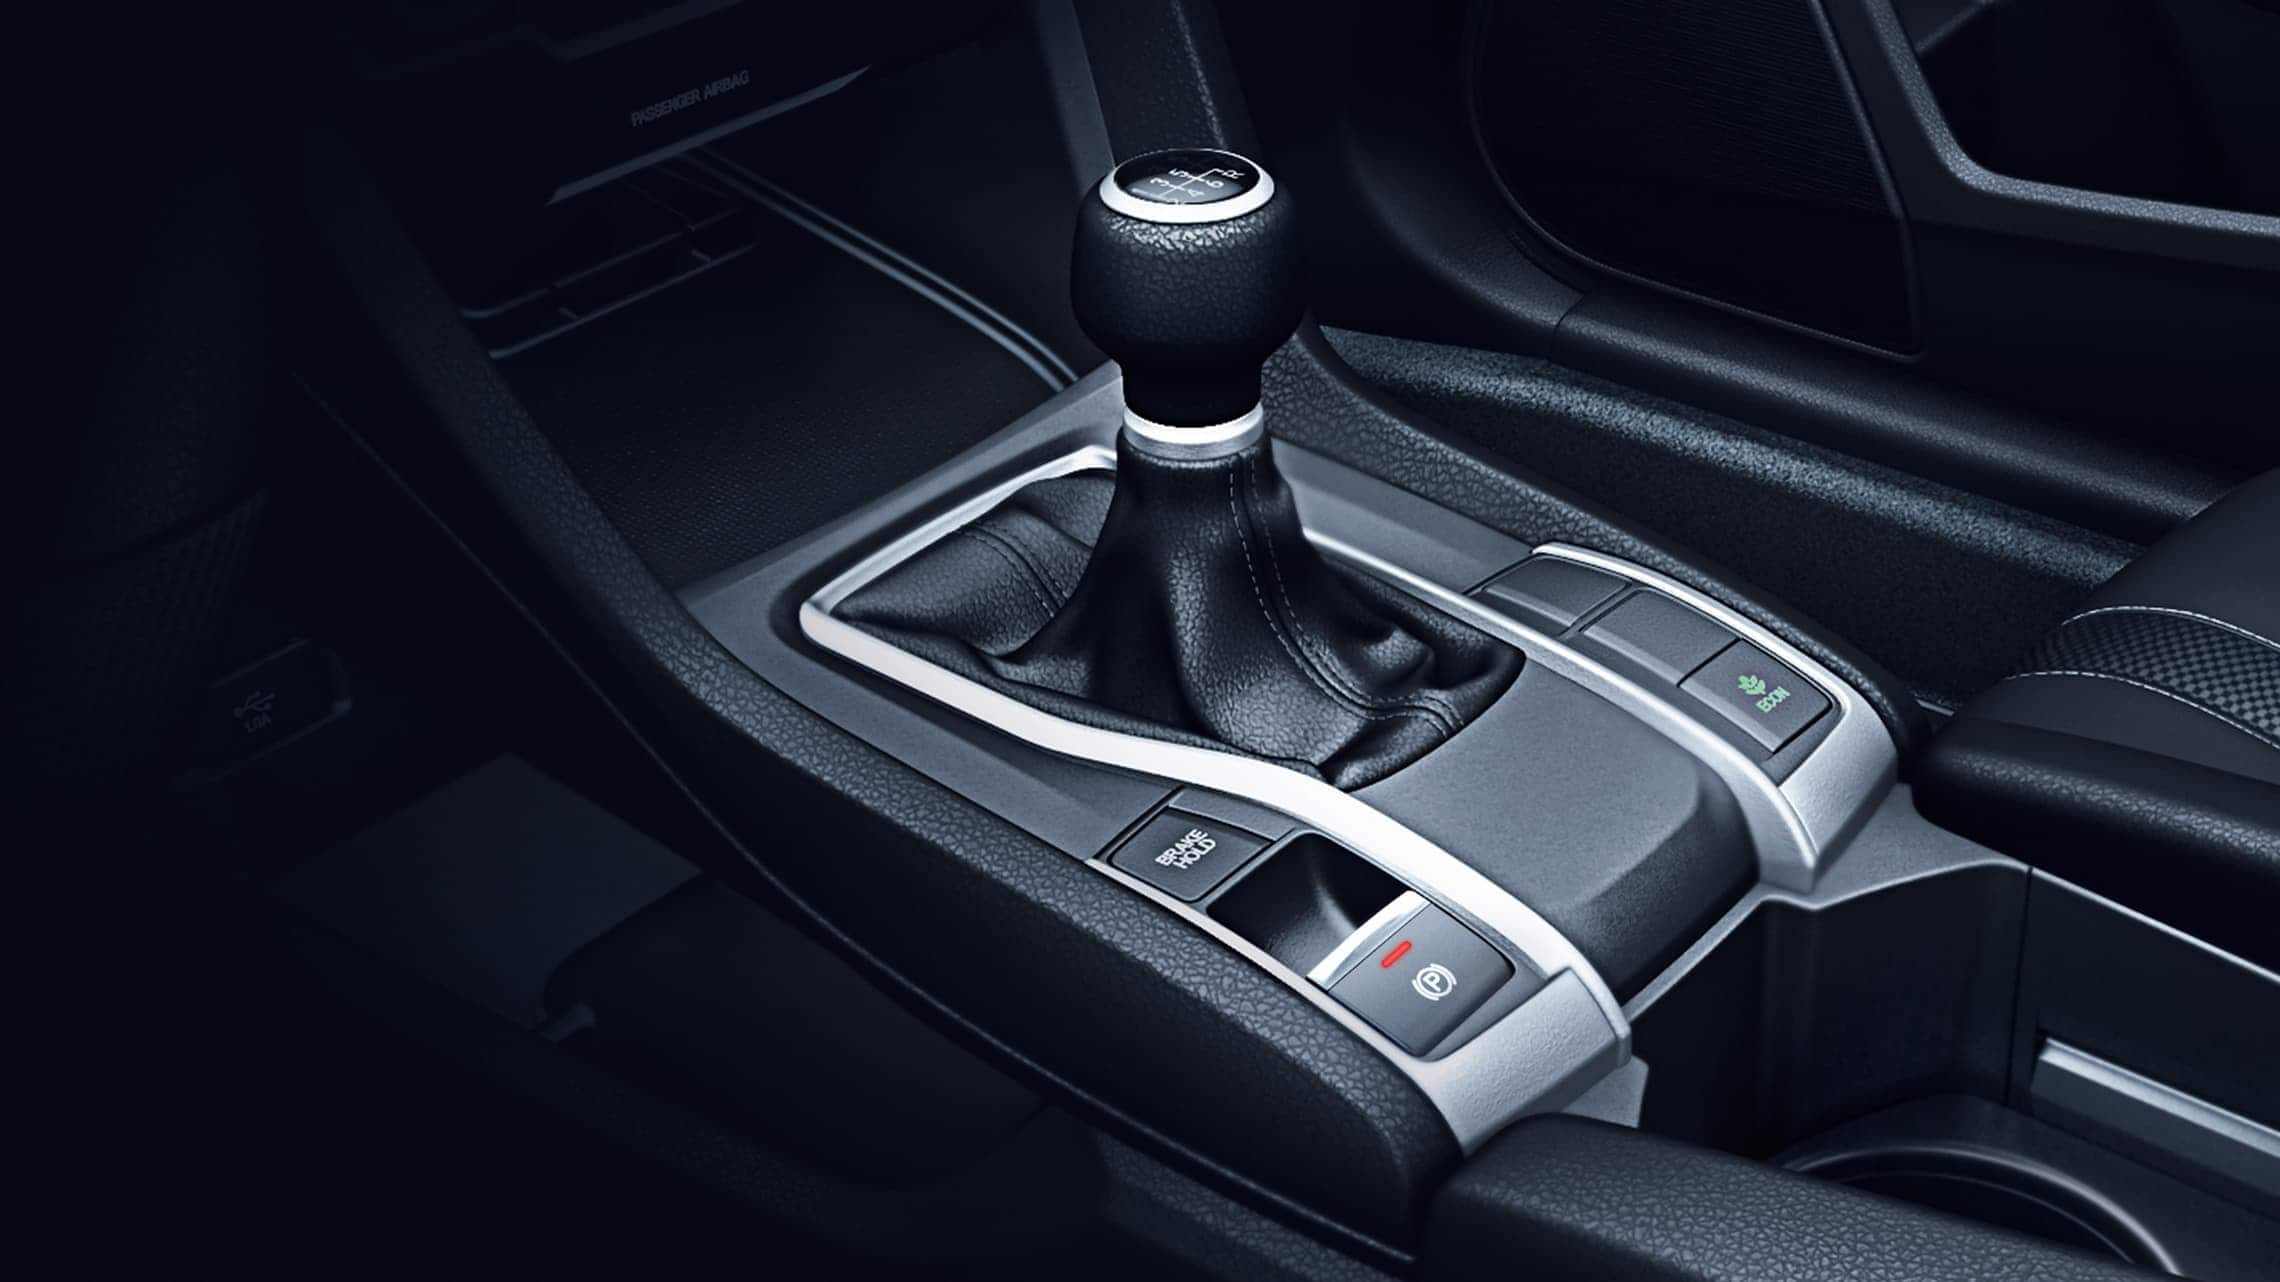 6-speed manual transmission shifter detail in the 2020 Honda Civic LX Sedan.